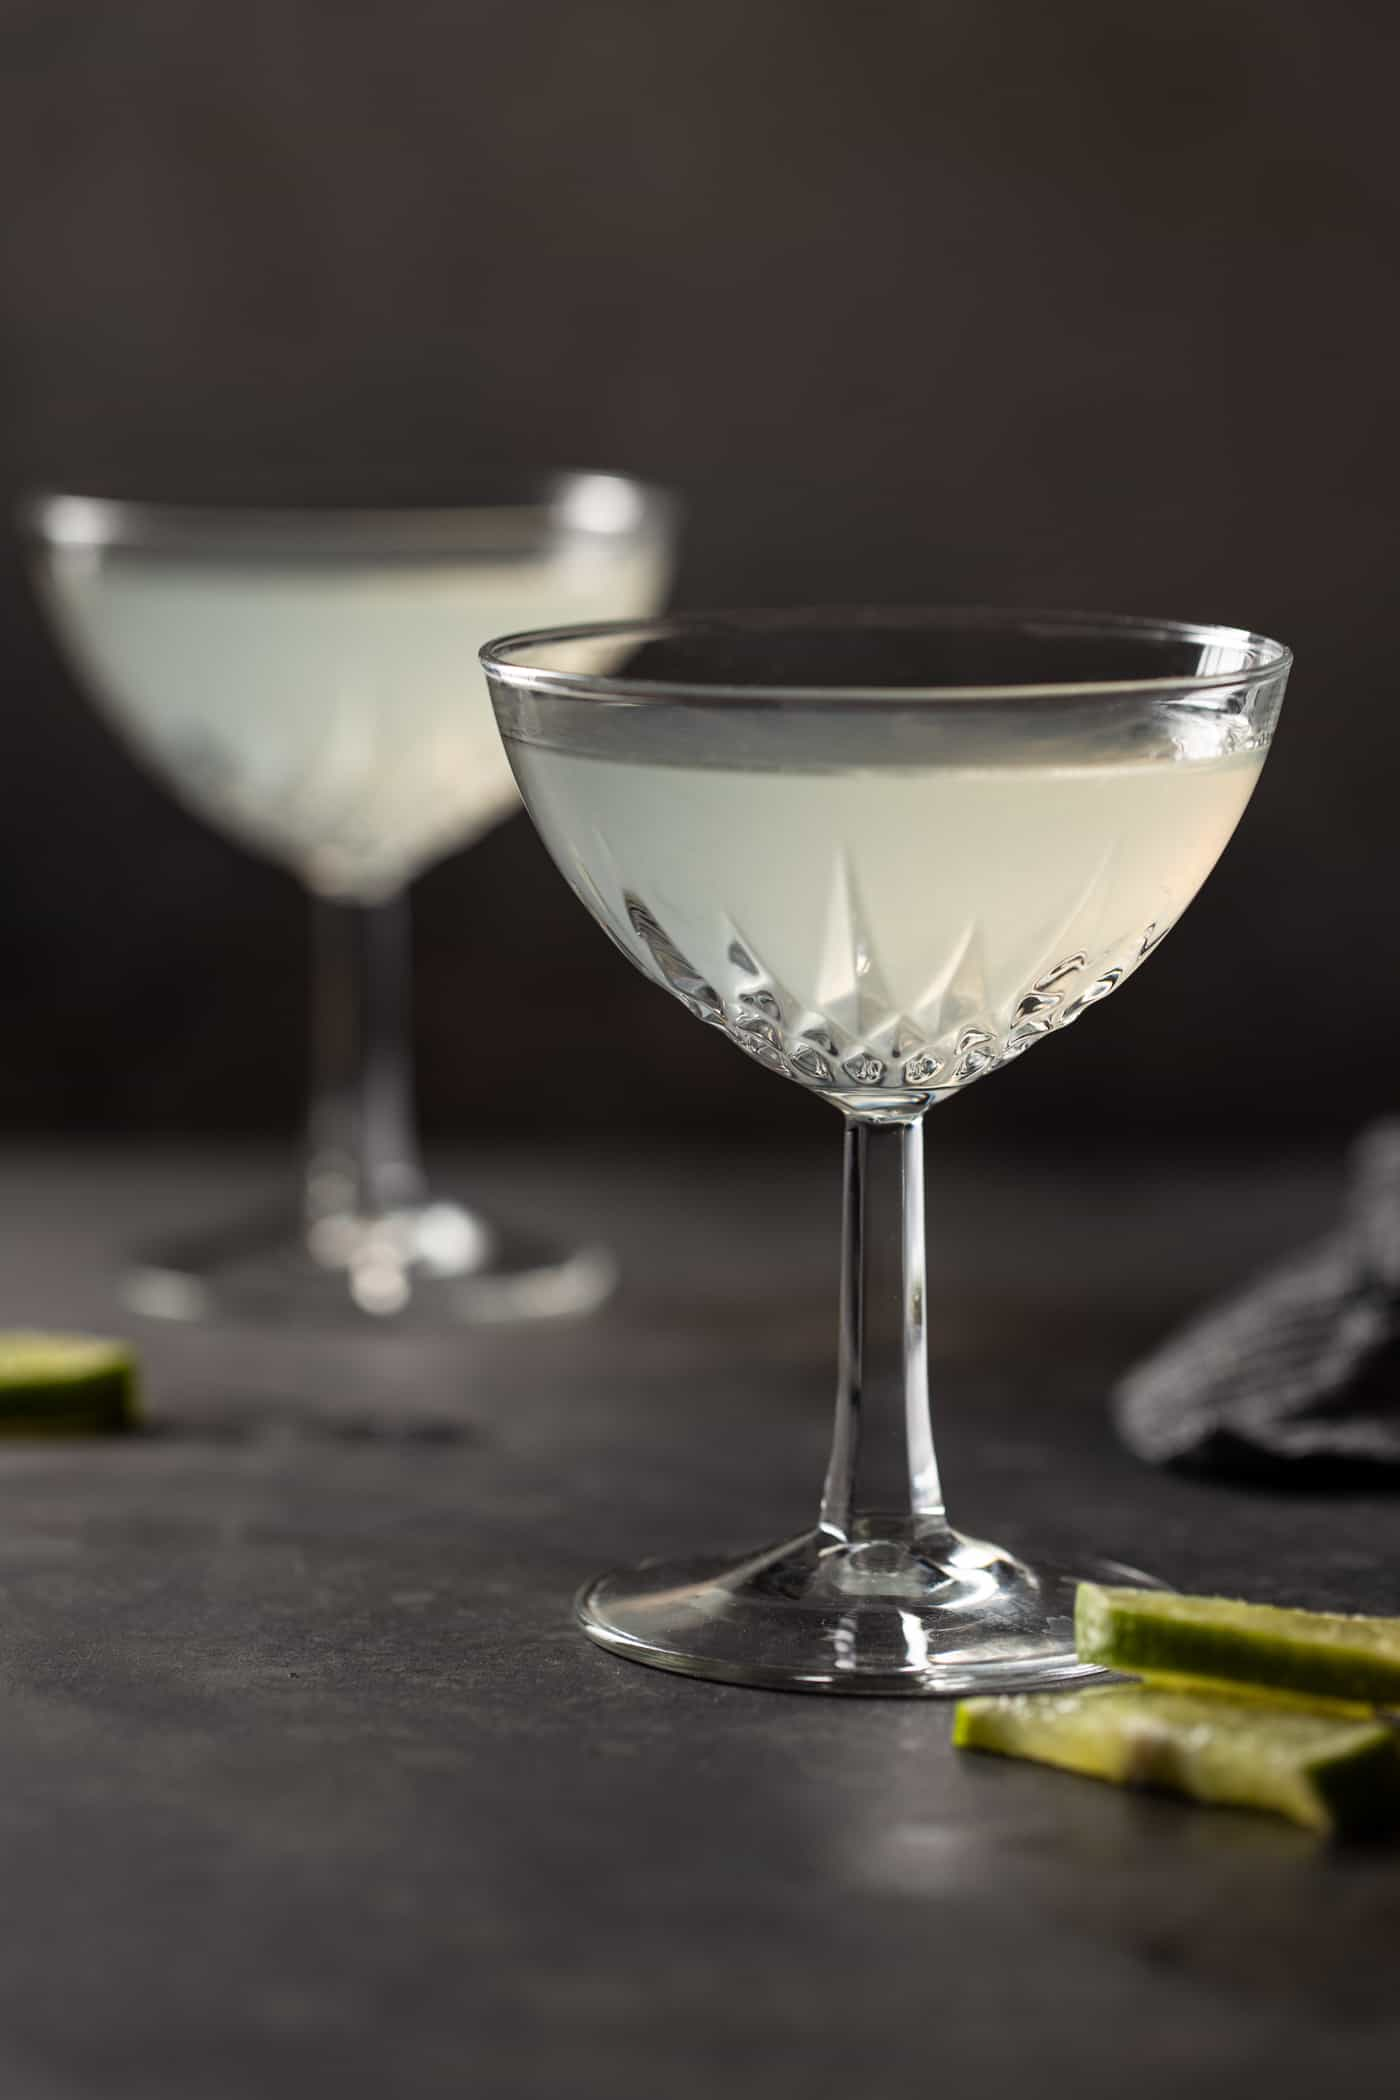 A close up of a wine glass sitting on a table, with Gimlet and Gin.